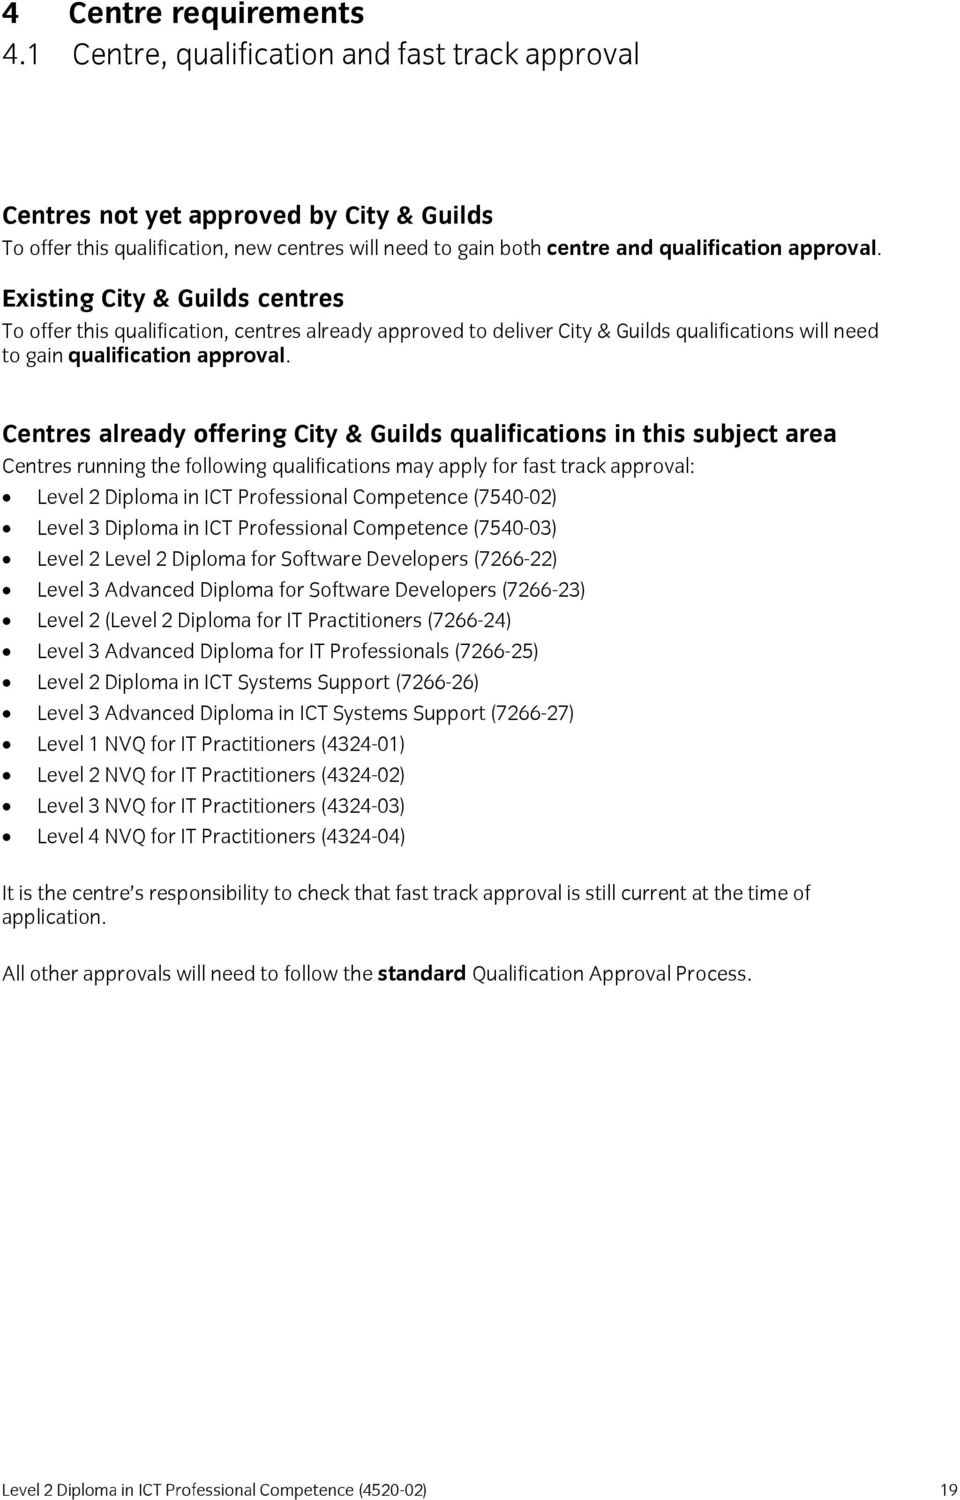 Existing City & Guilds centres To offer this qualification, centres already approved to deliver City & Guilds qualifications will need to gain qualification approval.